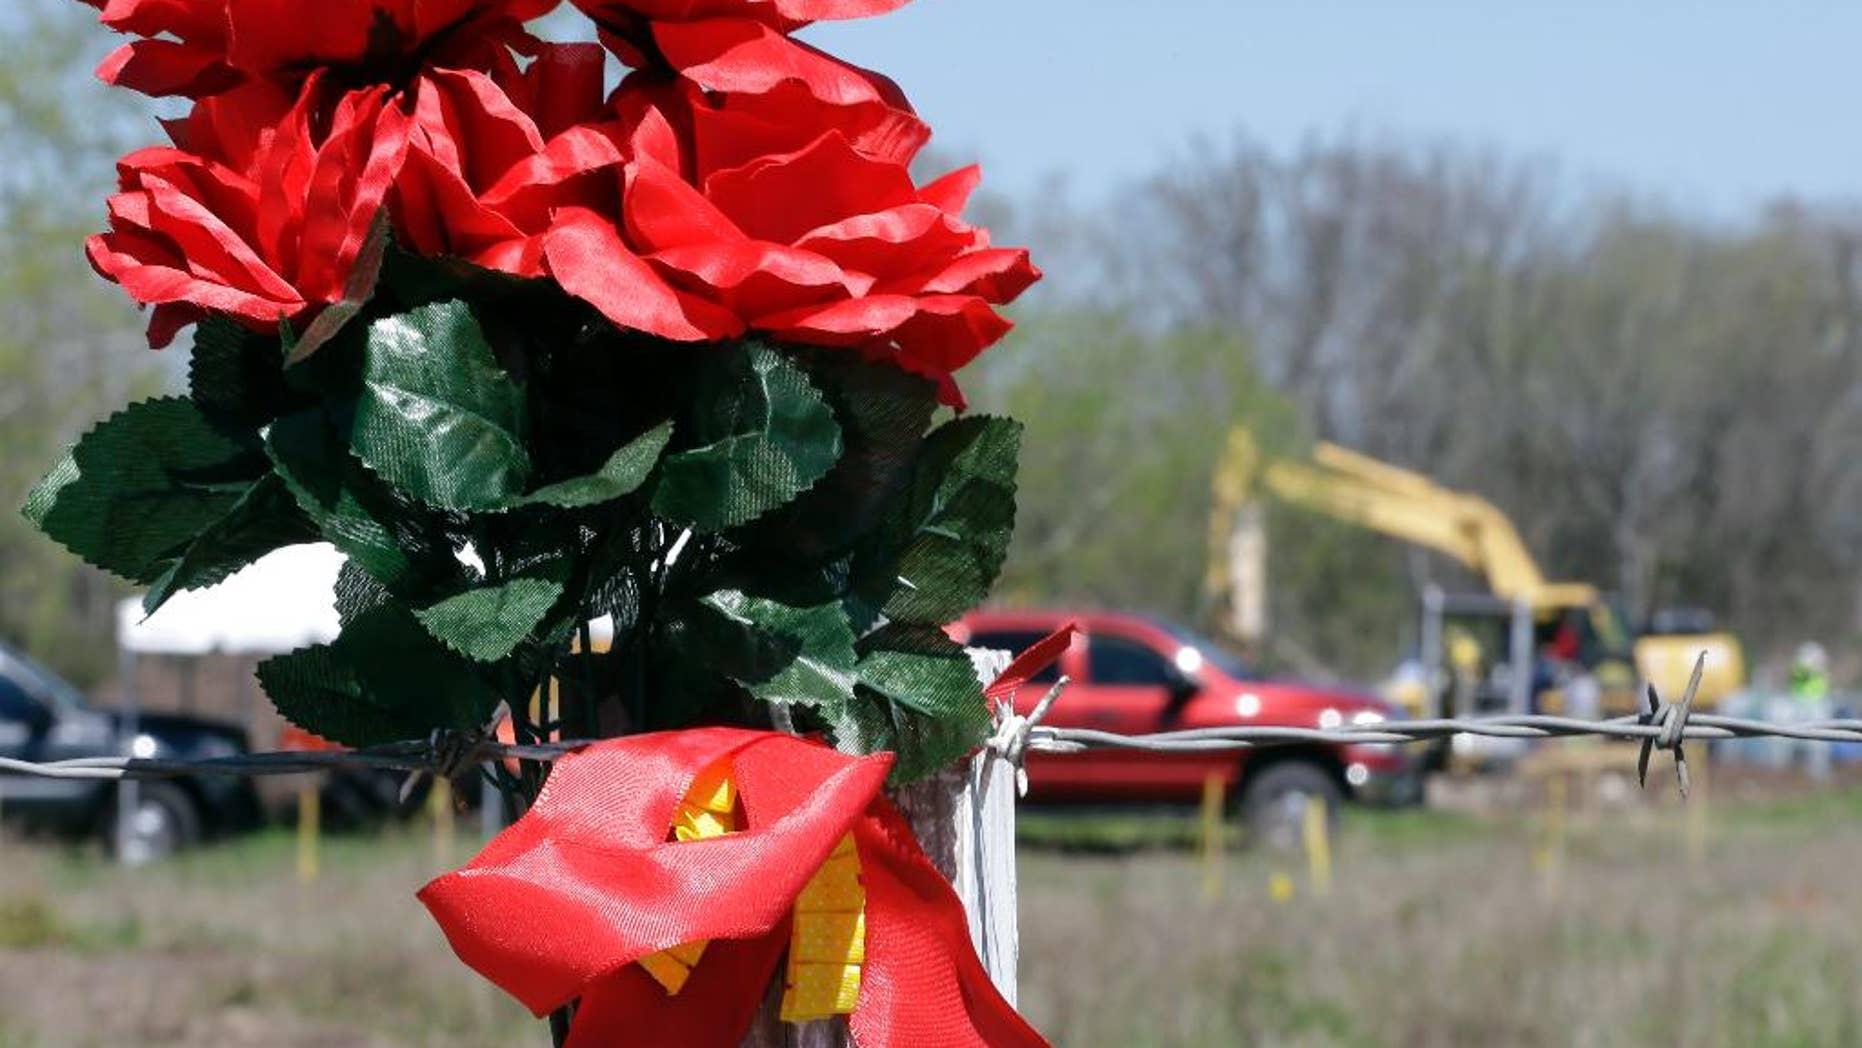 FILE - In this file photo made March 4, 2016, flowers hang on a fence surrounding an area where authorities search for human remains near Houston. A convicted kidnapper has been temporarily released from prison to help authorities who are digging for the body of a teenager who disappeared two decades ago. Denton police say the remains have been identified through dental records as those of Kelli Cox, who went missing from the North Texas town of Denton in July 1997. (AP Photo/David J. Phillip, file)